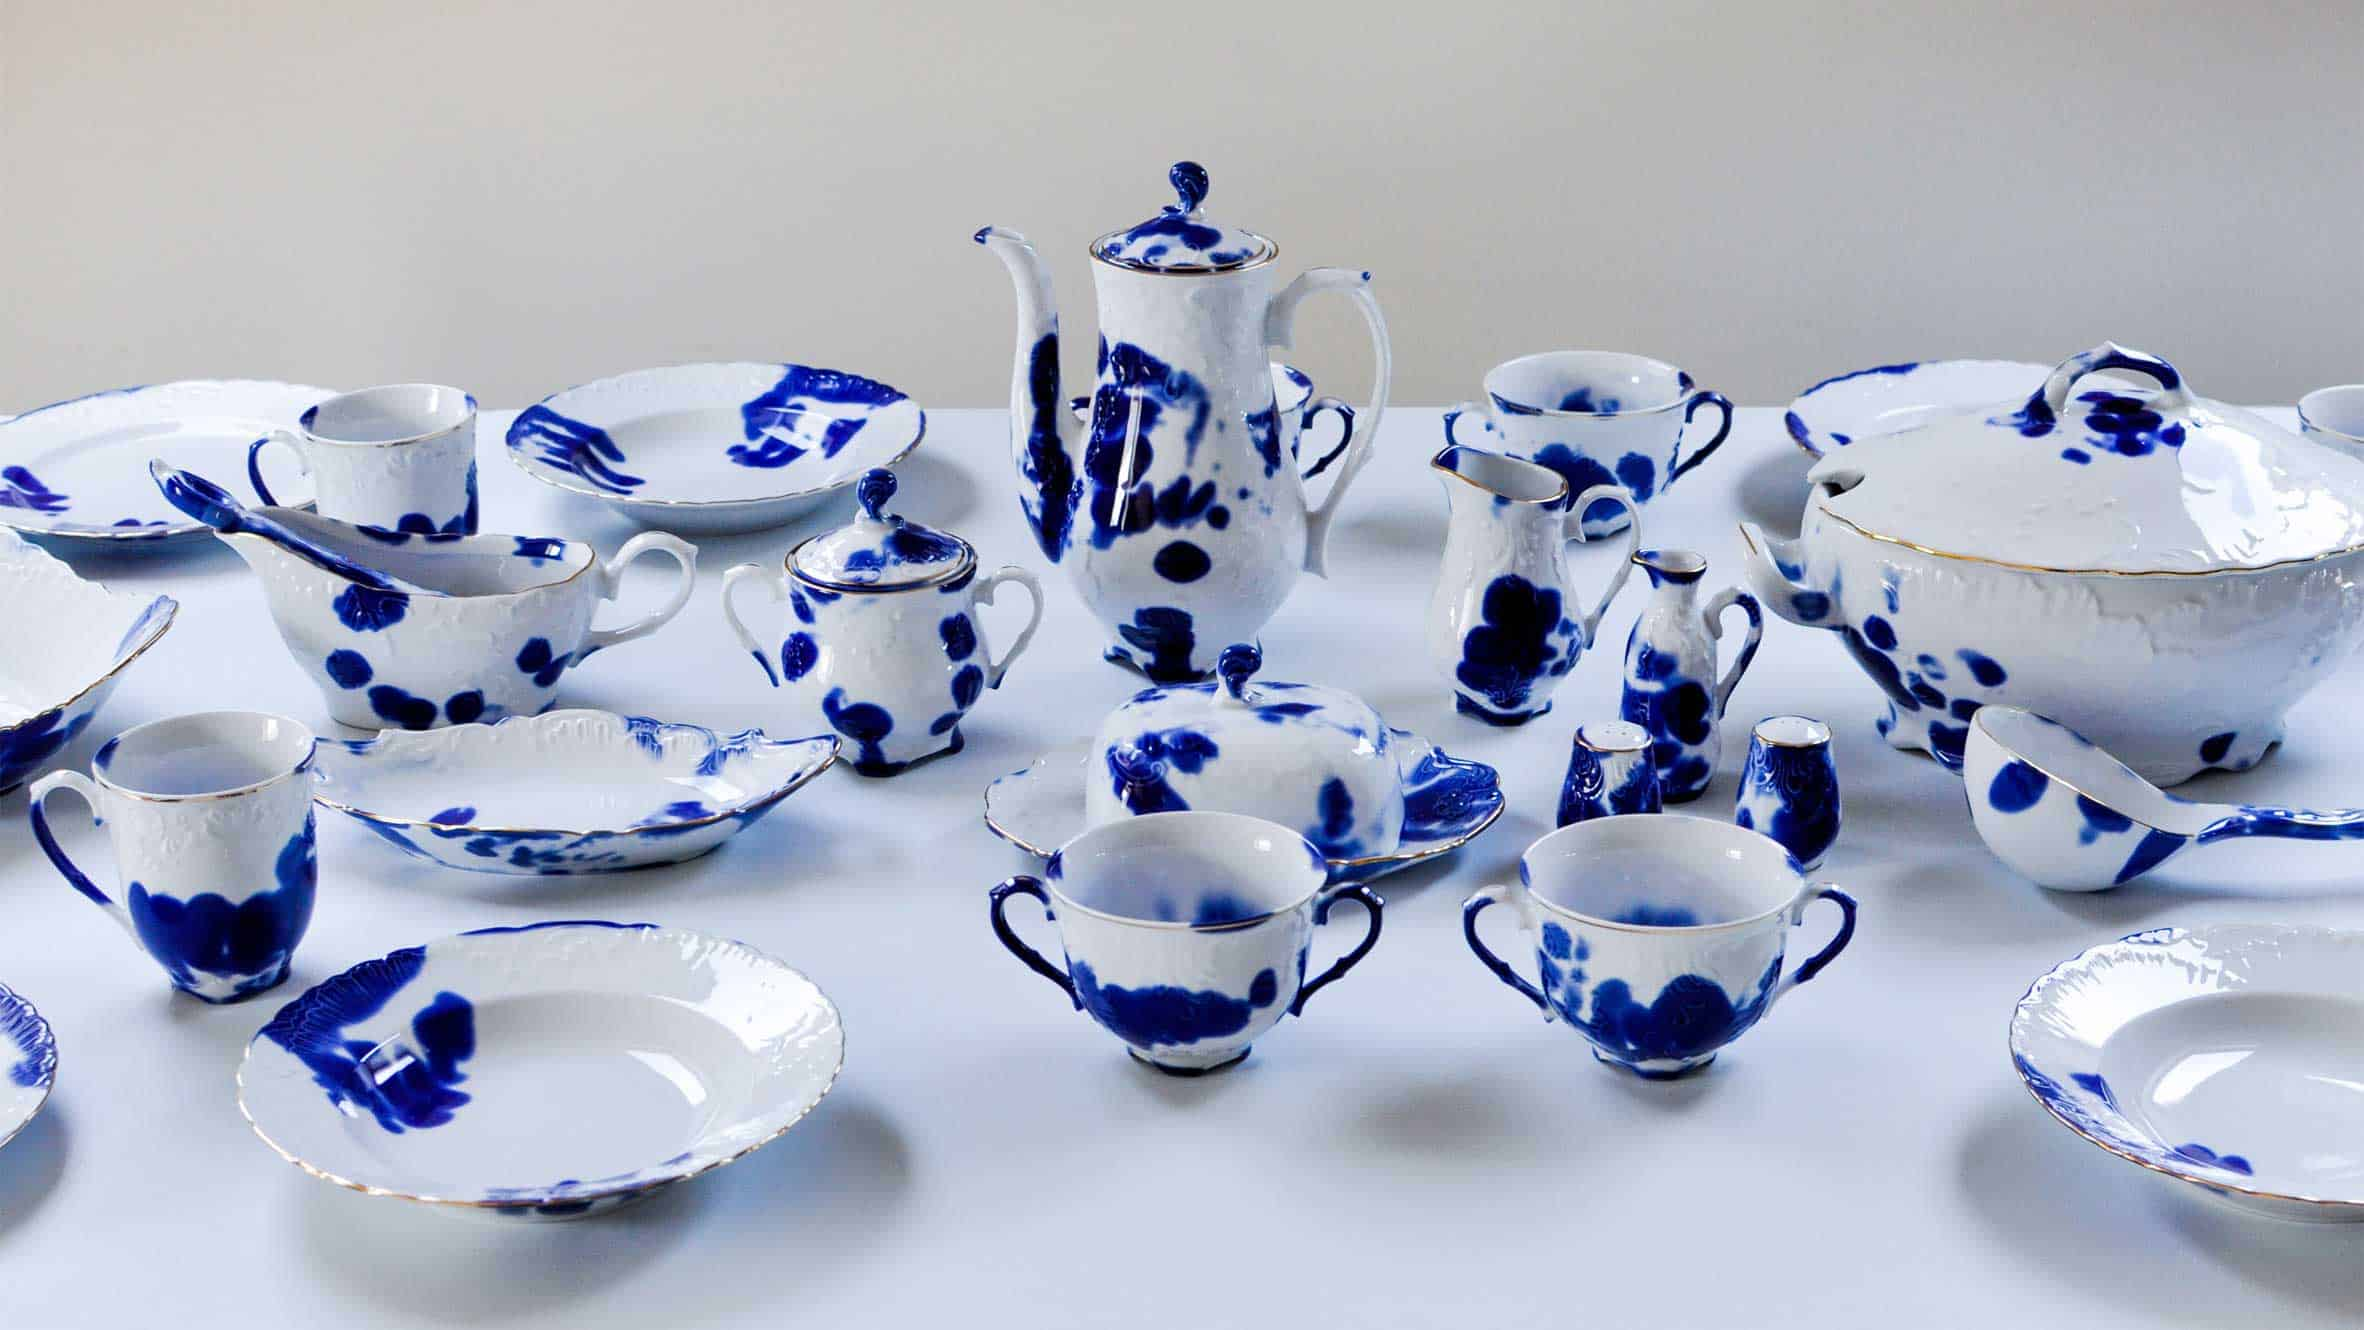 The Human Trace tableware, part of the People from the porcelain factory project, Ewa Klekot and Arkadiusz Szwed.